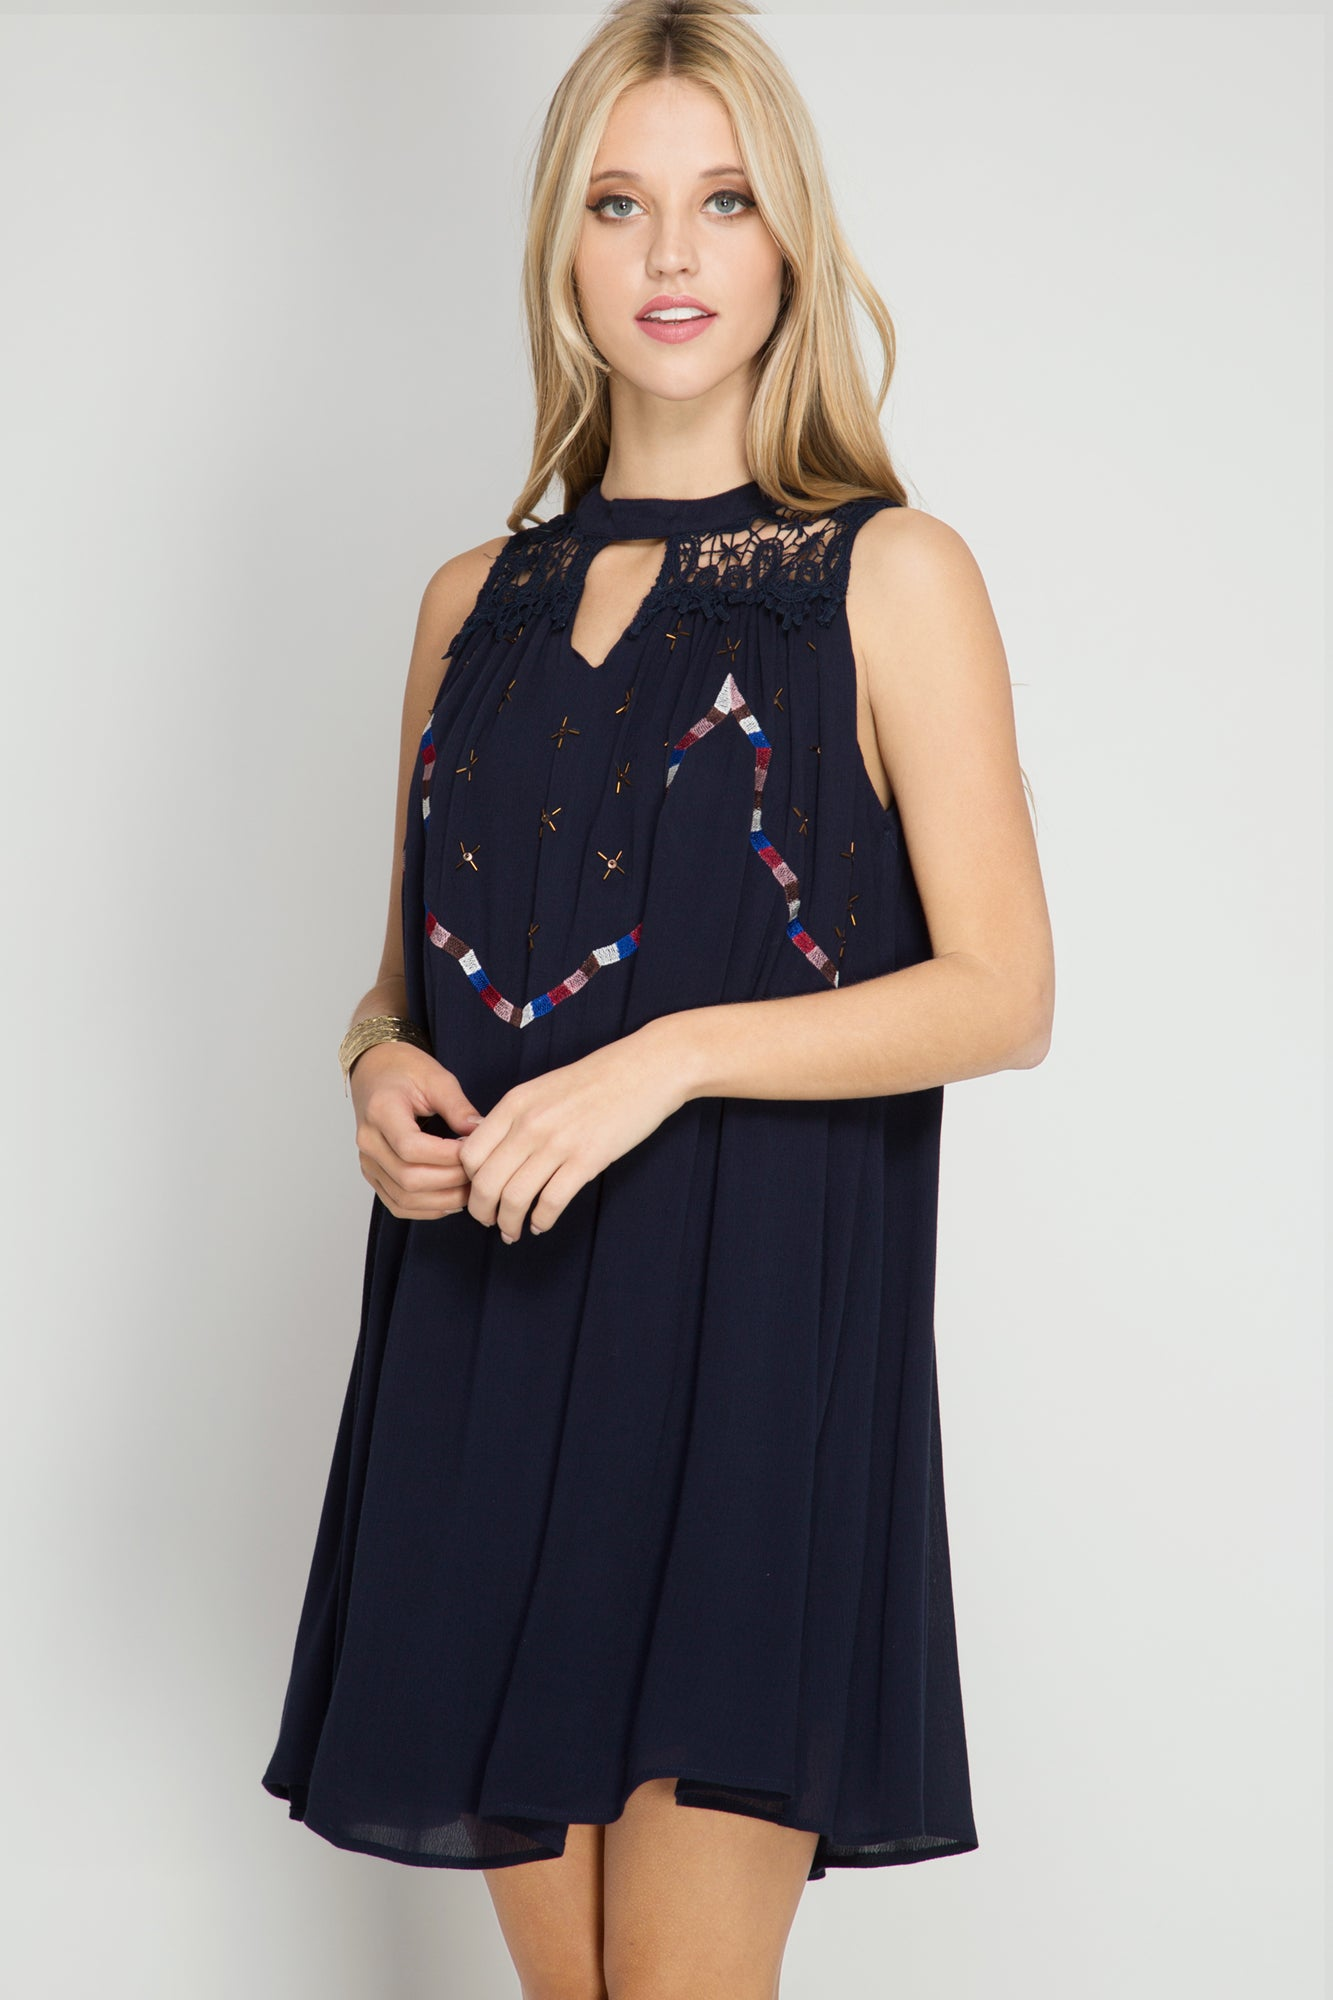 SLEEVELESS SHIFT DRESS WITH YOKE LACE